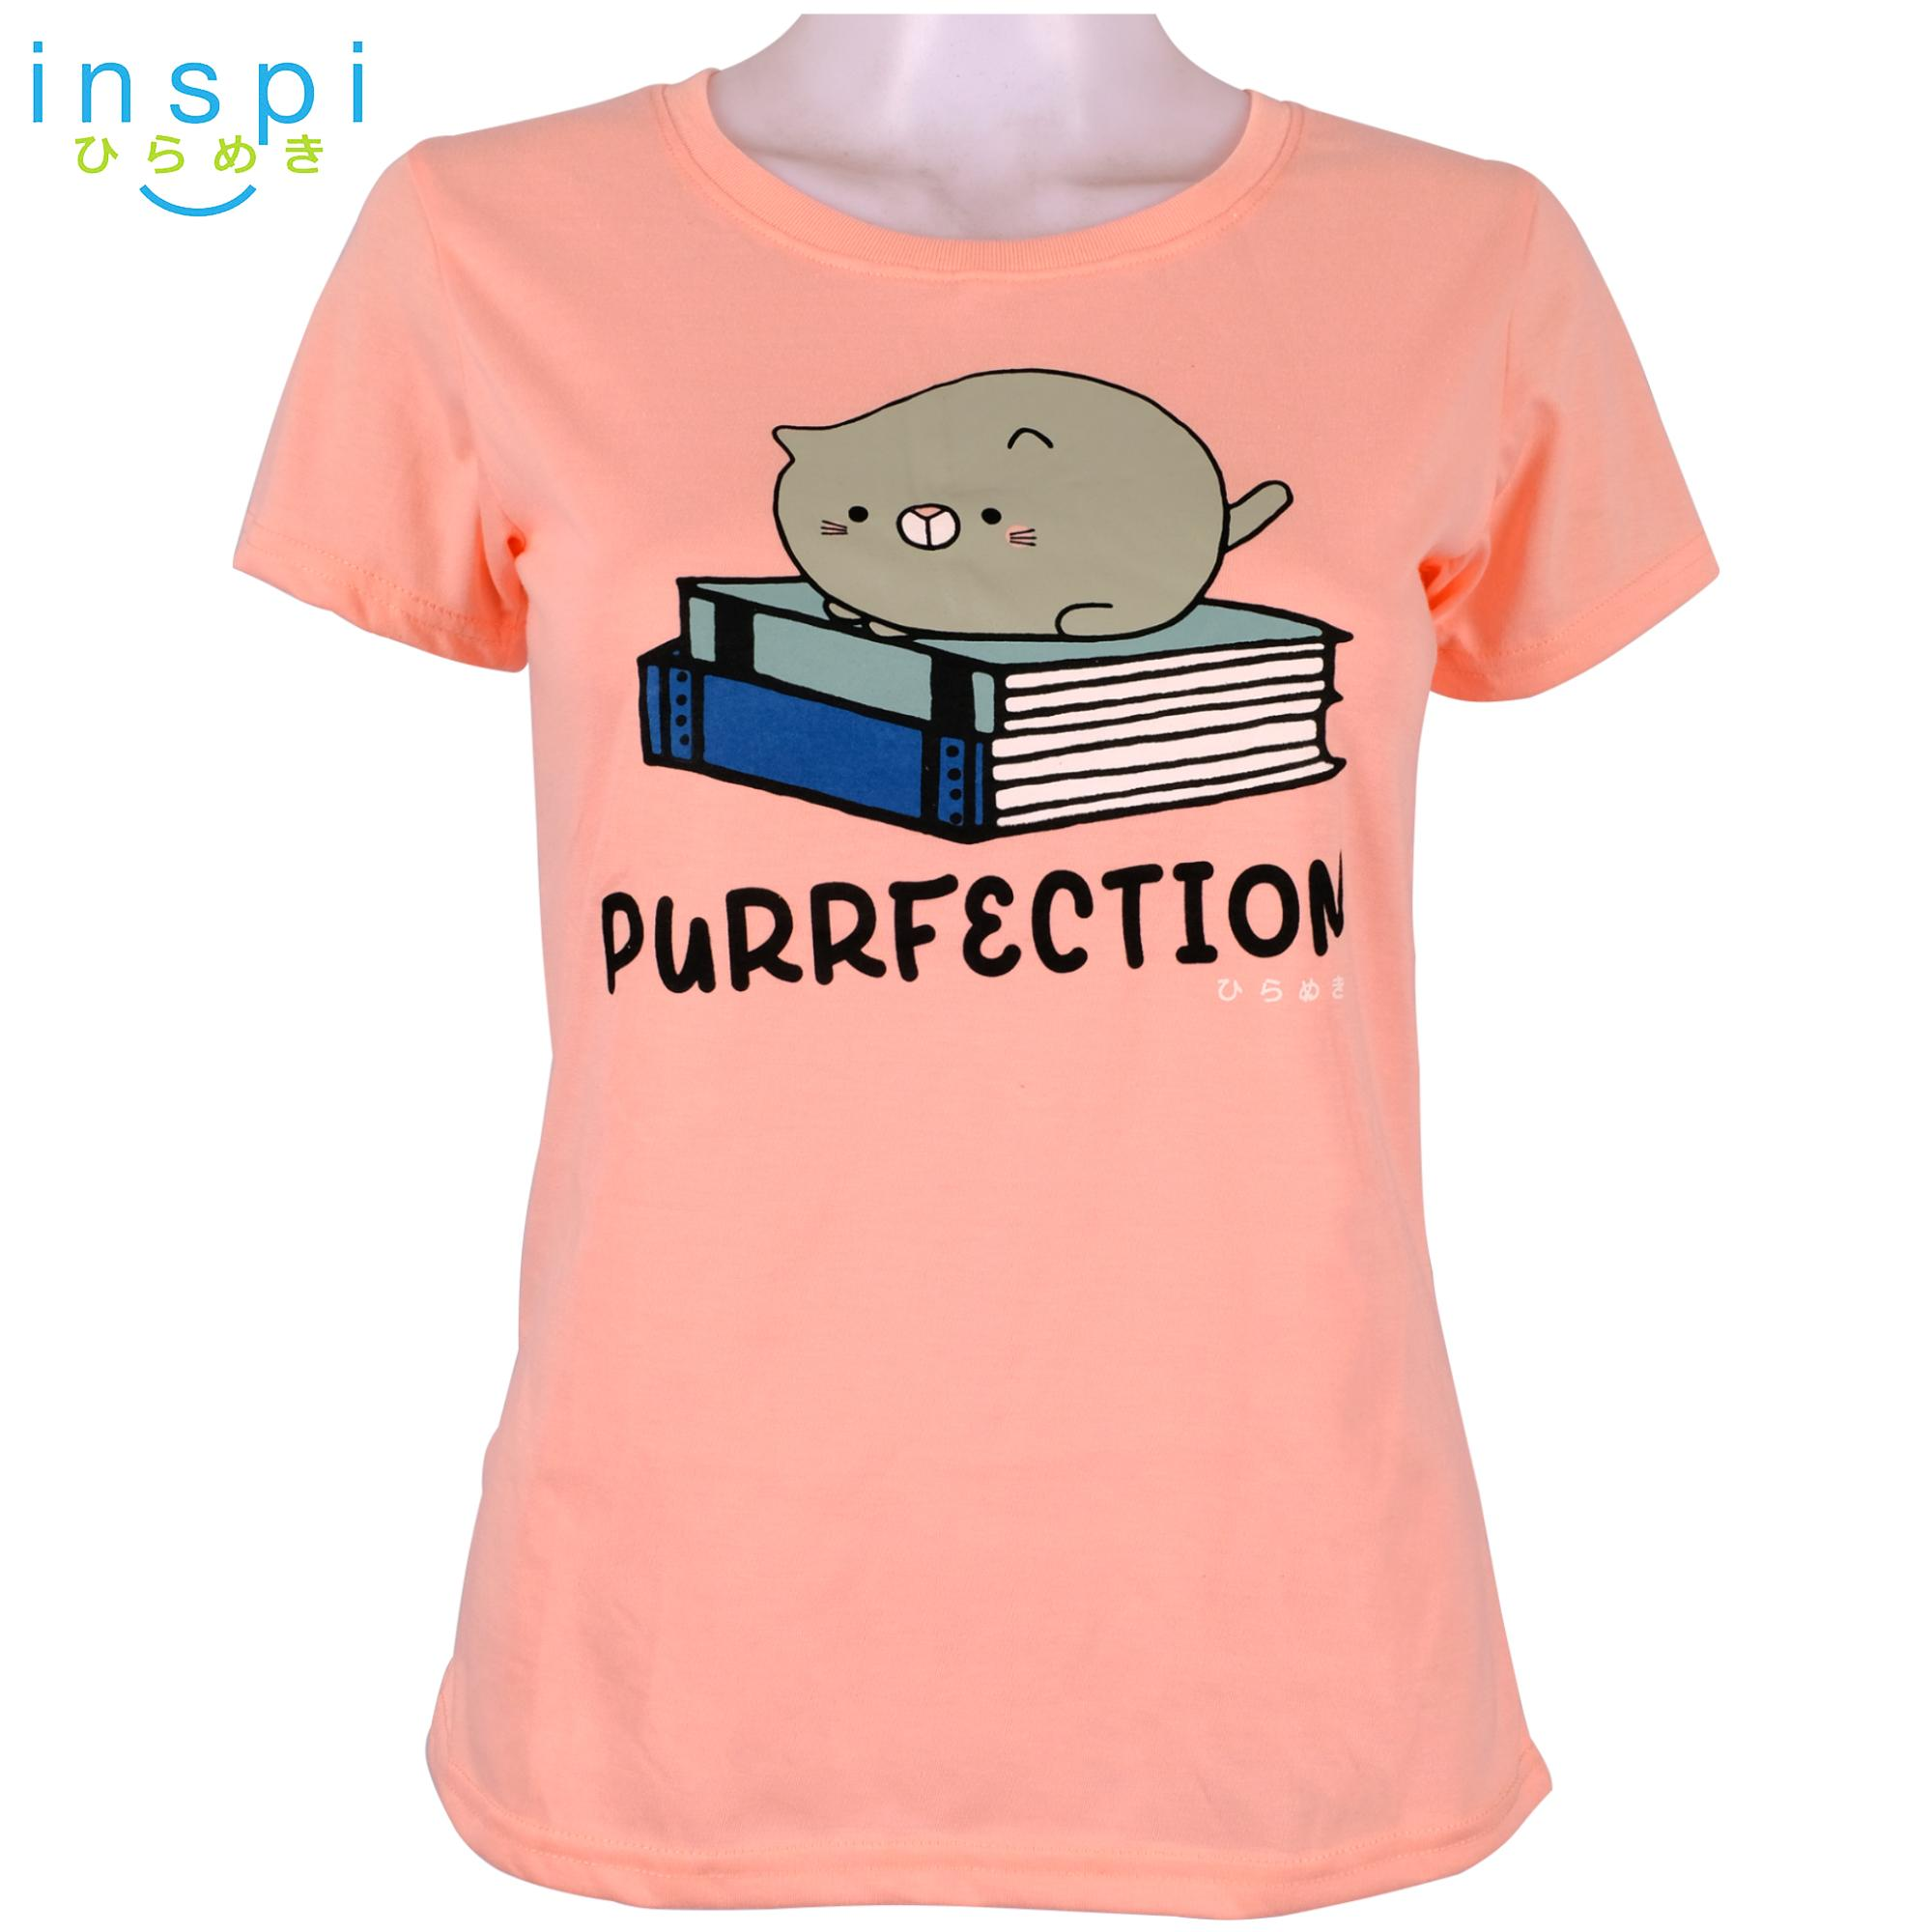 INSPI Tees Ladies Loose Fit Purrfection (Dairy Peach) tshirt printed  graphic tee t shirt 5b98f0a79